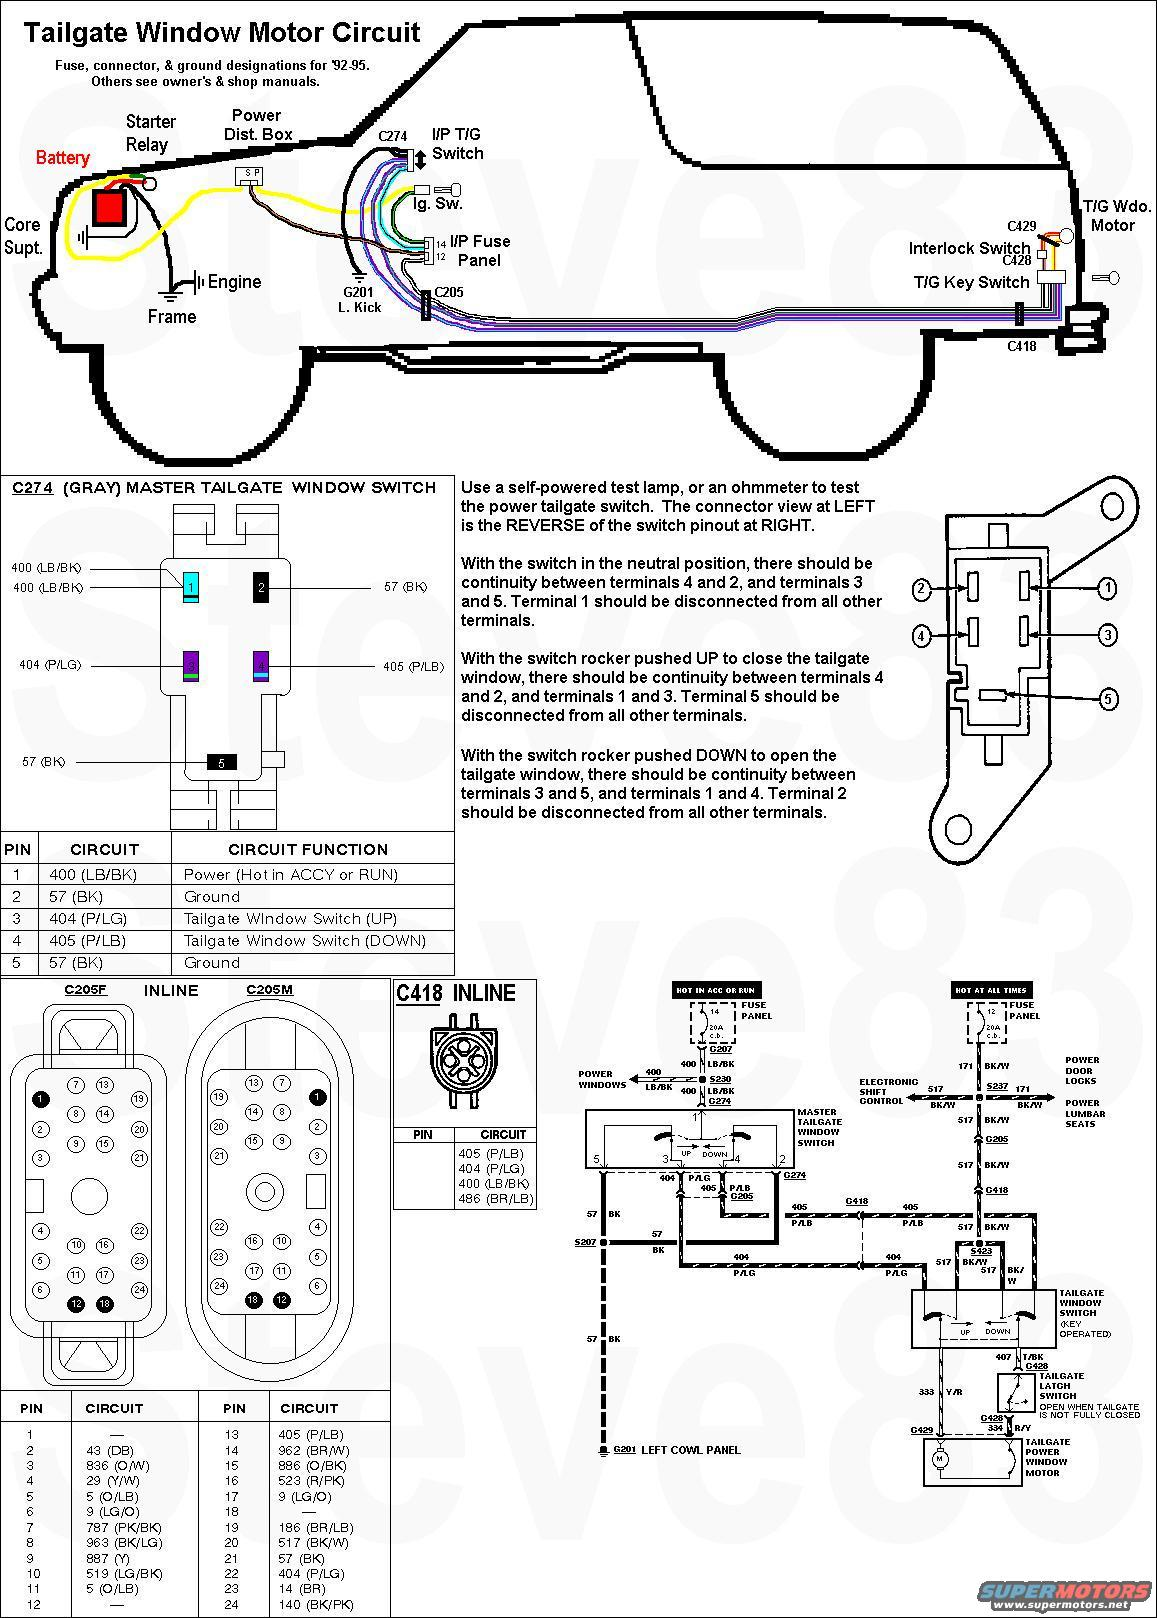 wmtgmotorwiring wiring diagram 1975 ford bronco the wiring diagram readingrat net 1979 bronco fuse box diagram at alyssarenee.co